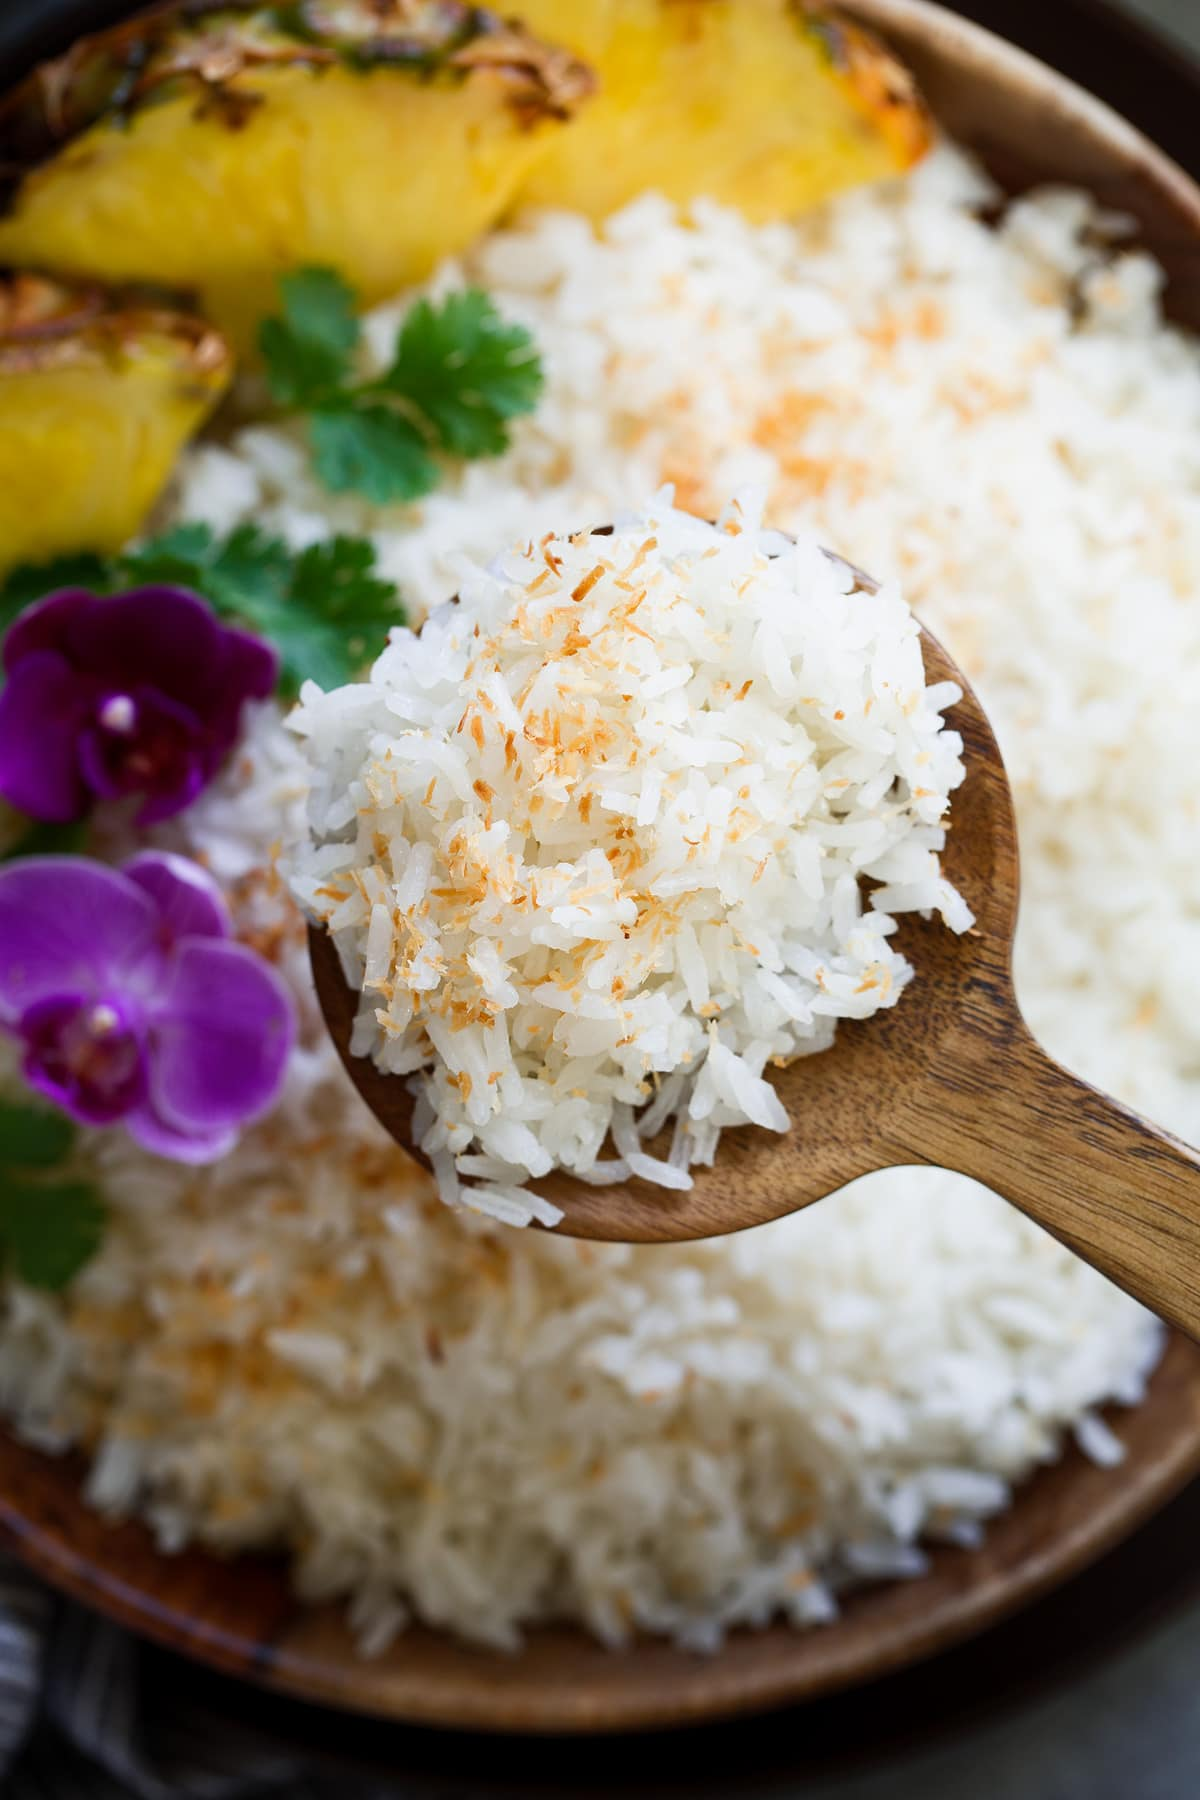 Close up image of coconut rice garnished with toasted coconut.